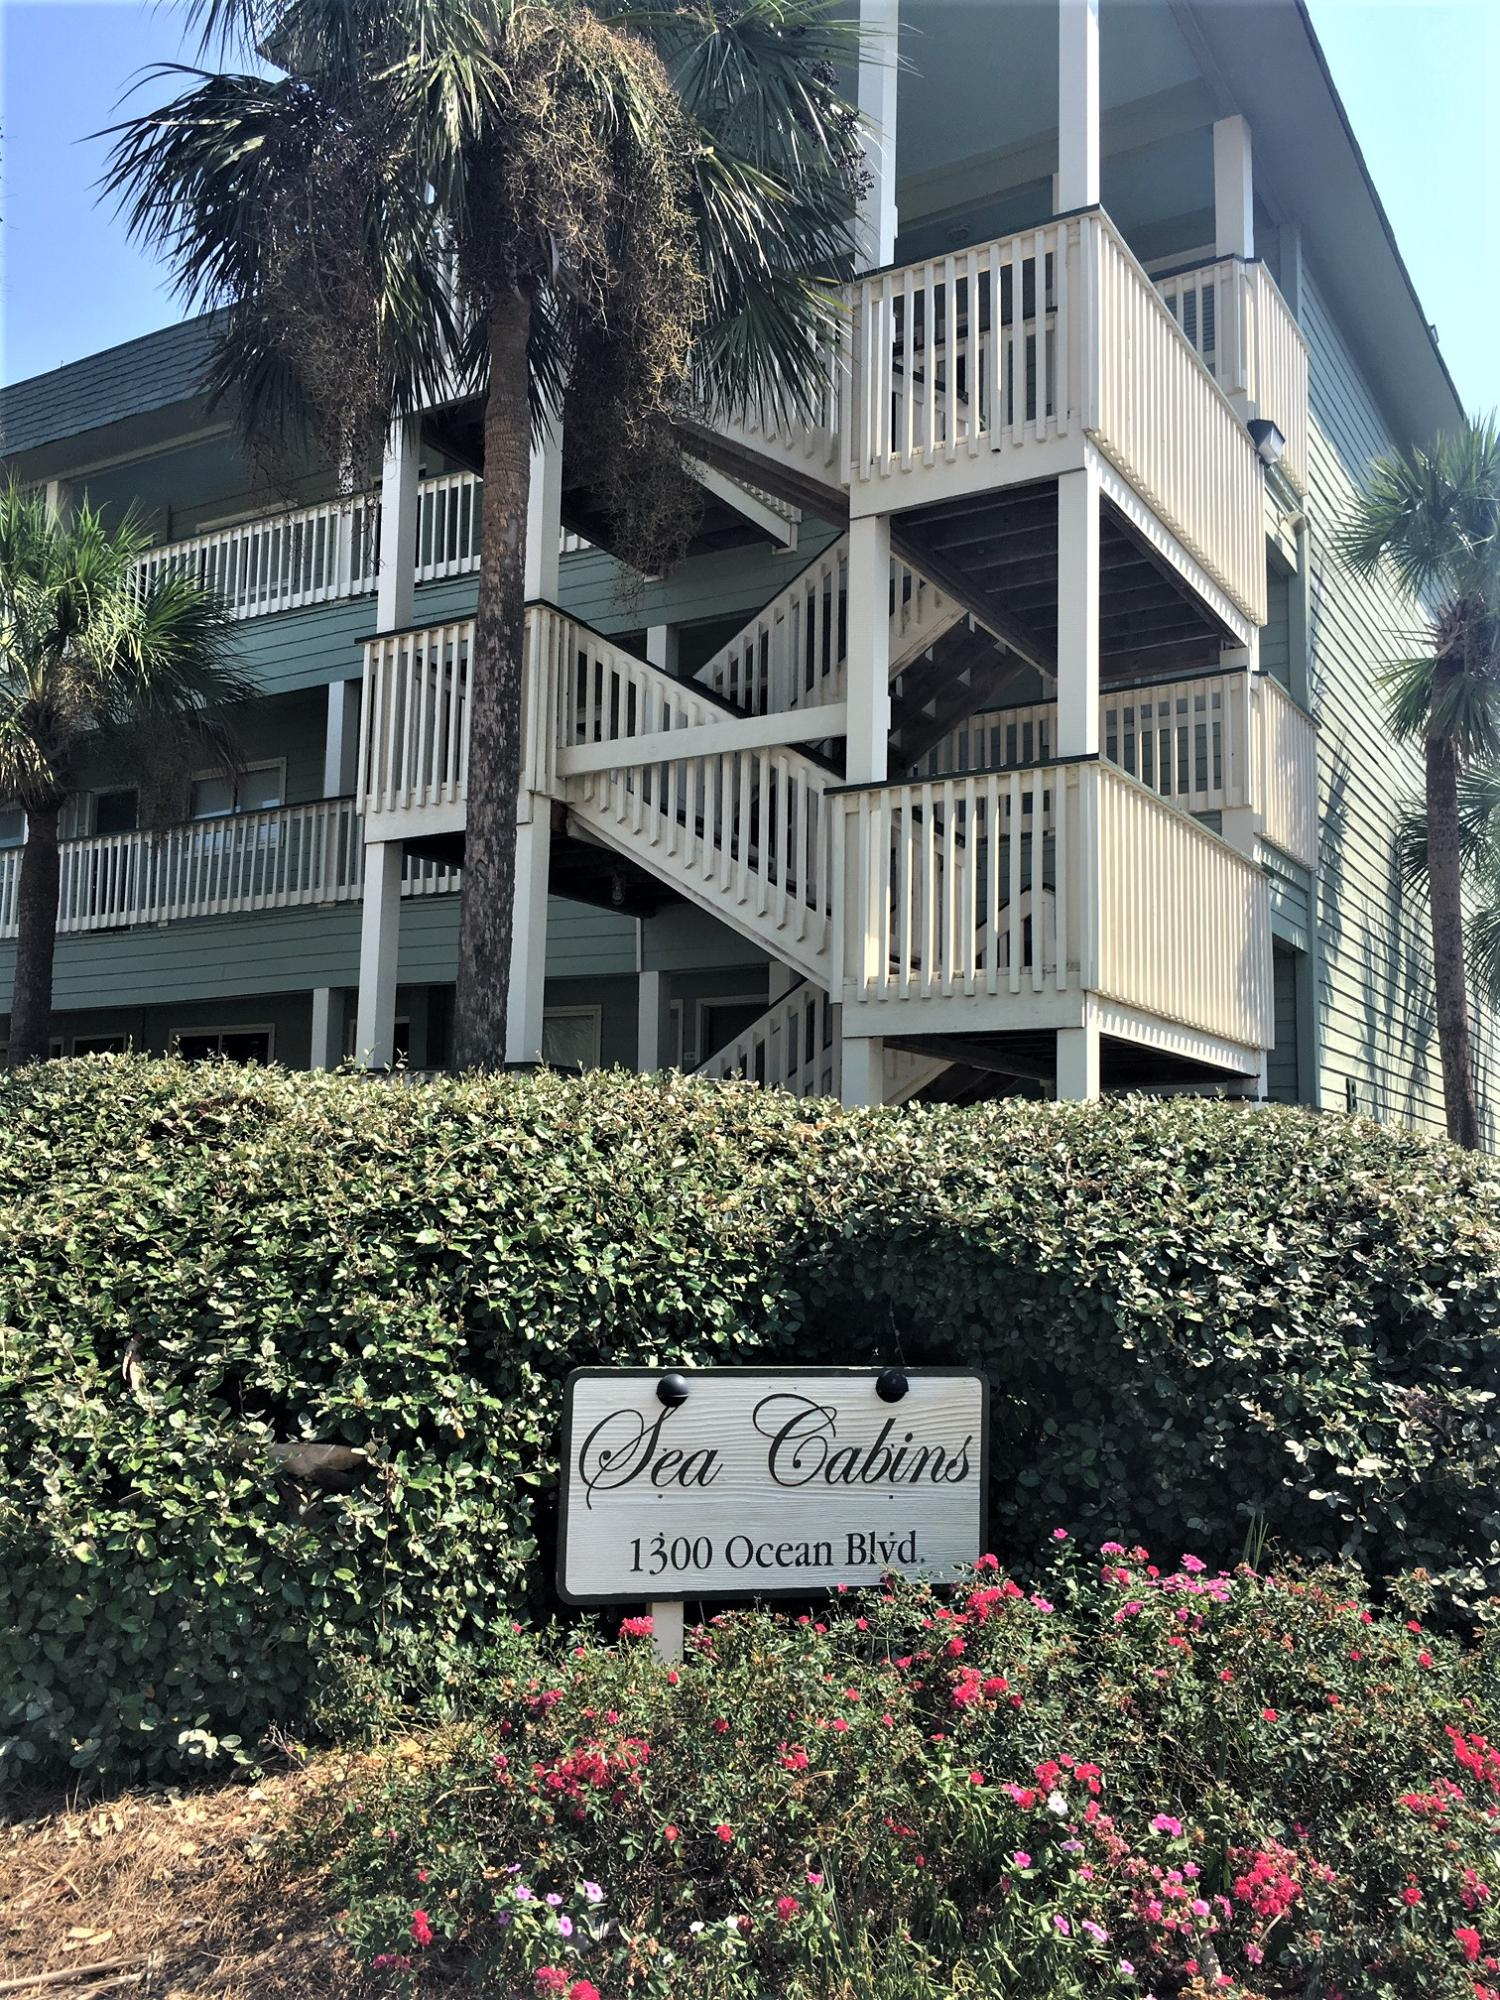 None Homes For Sale - 1300 Ocean Blvd, Isle of Palms, SC - 0